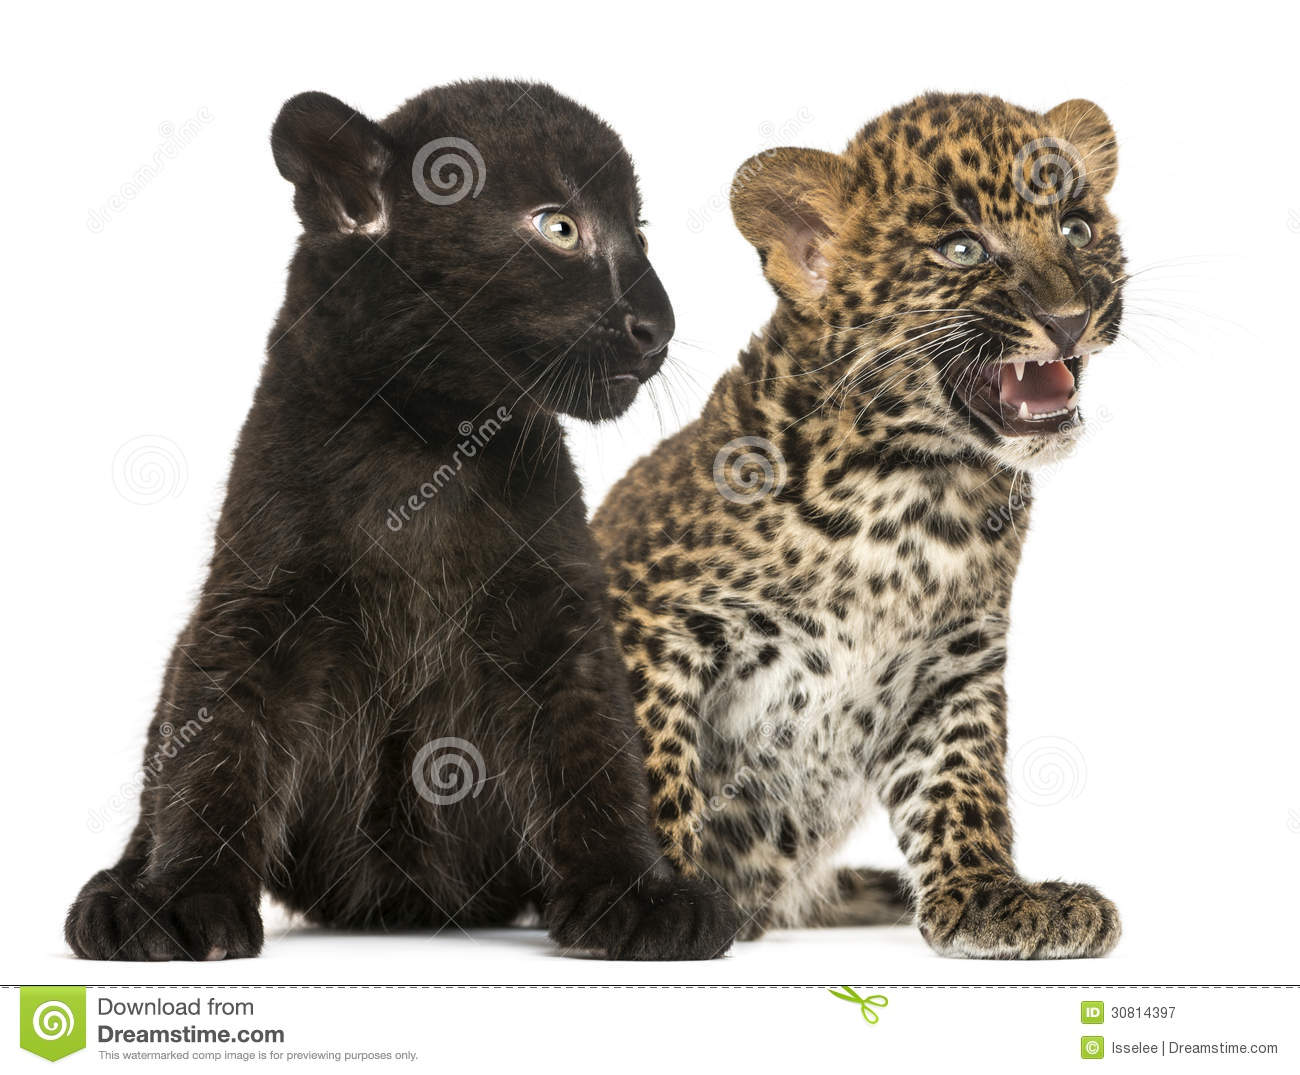 Black Panther Animal Wallpaper Black And Spotted Leopard Cubs Sitting Next To Each Other